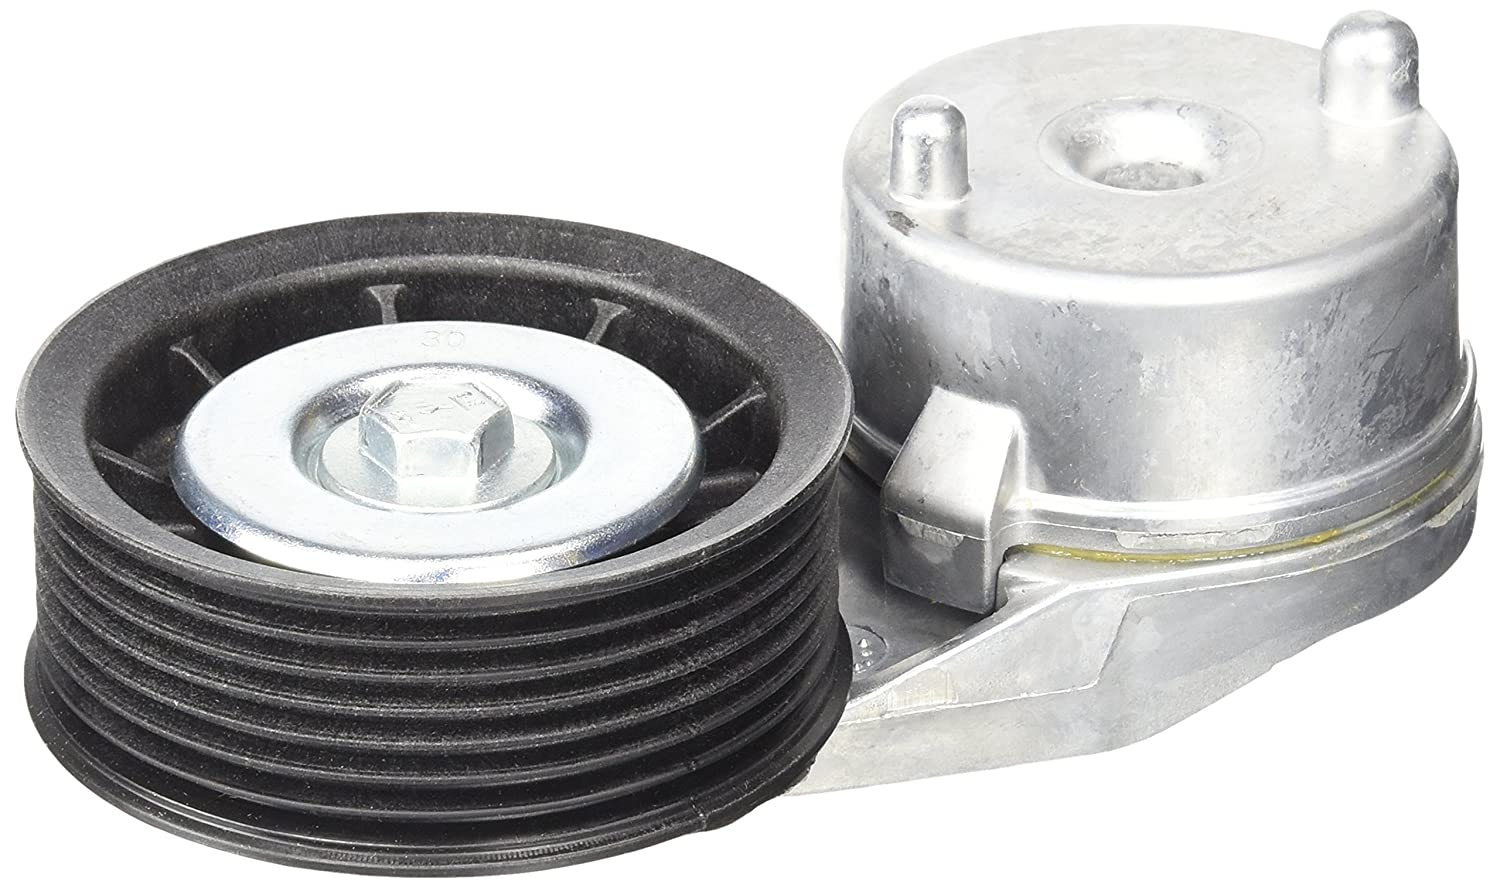 Dayco 89325 Automatic Tensioner Assembly Dayco Automotive DAY89325